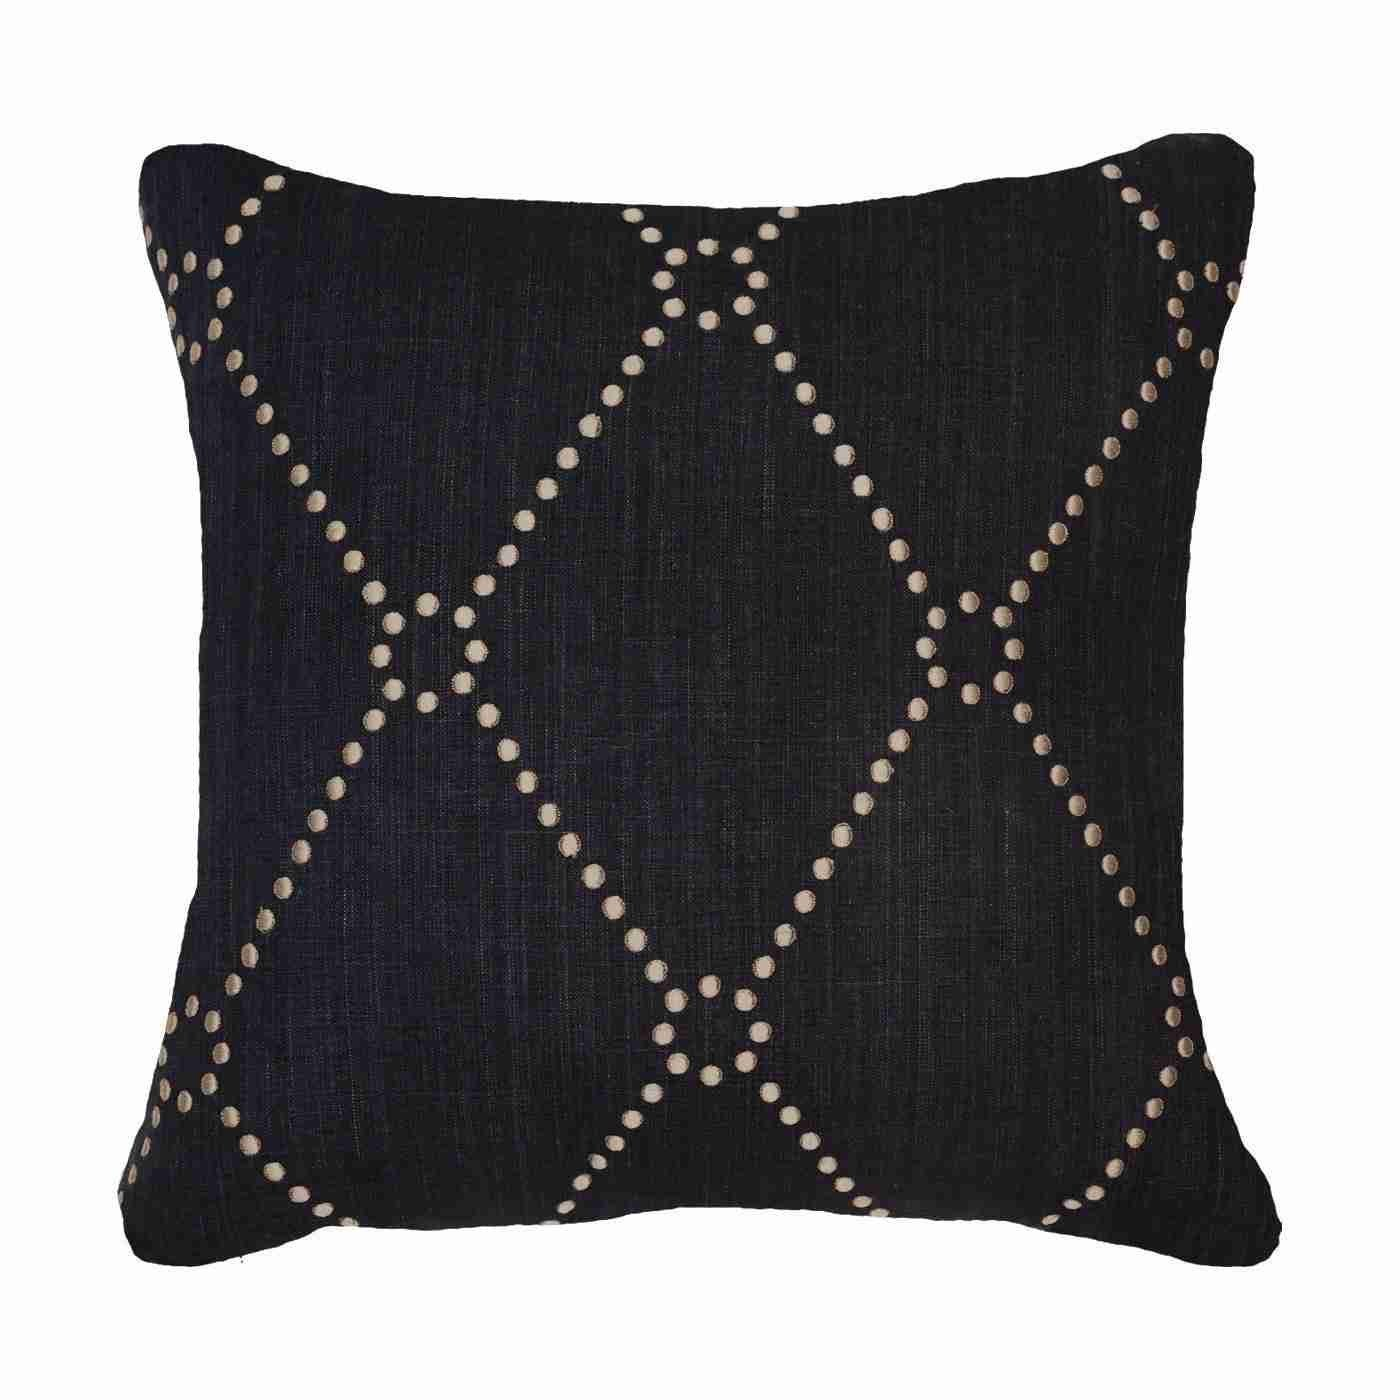 Bandhini Homewear Design Medium Cushion Black / 19 x 19 Dot Diamond Black Medium 50 x 50 cm